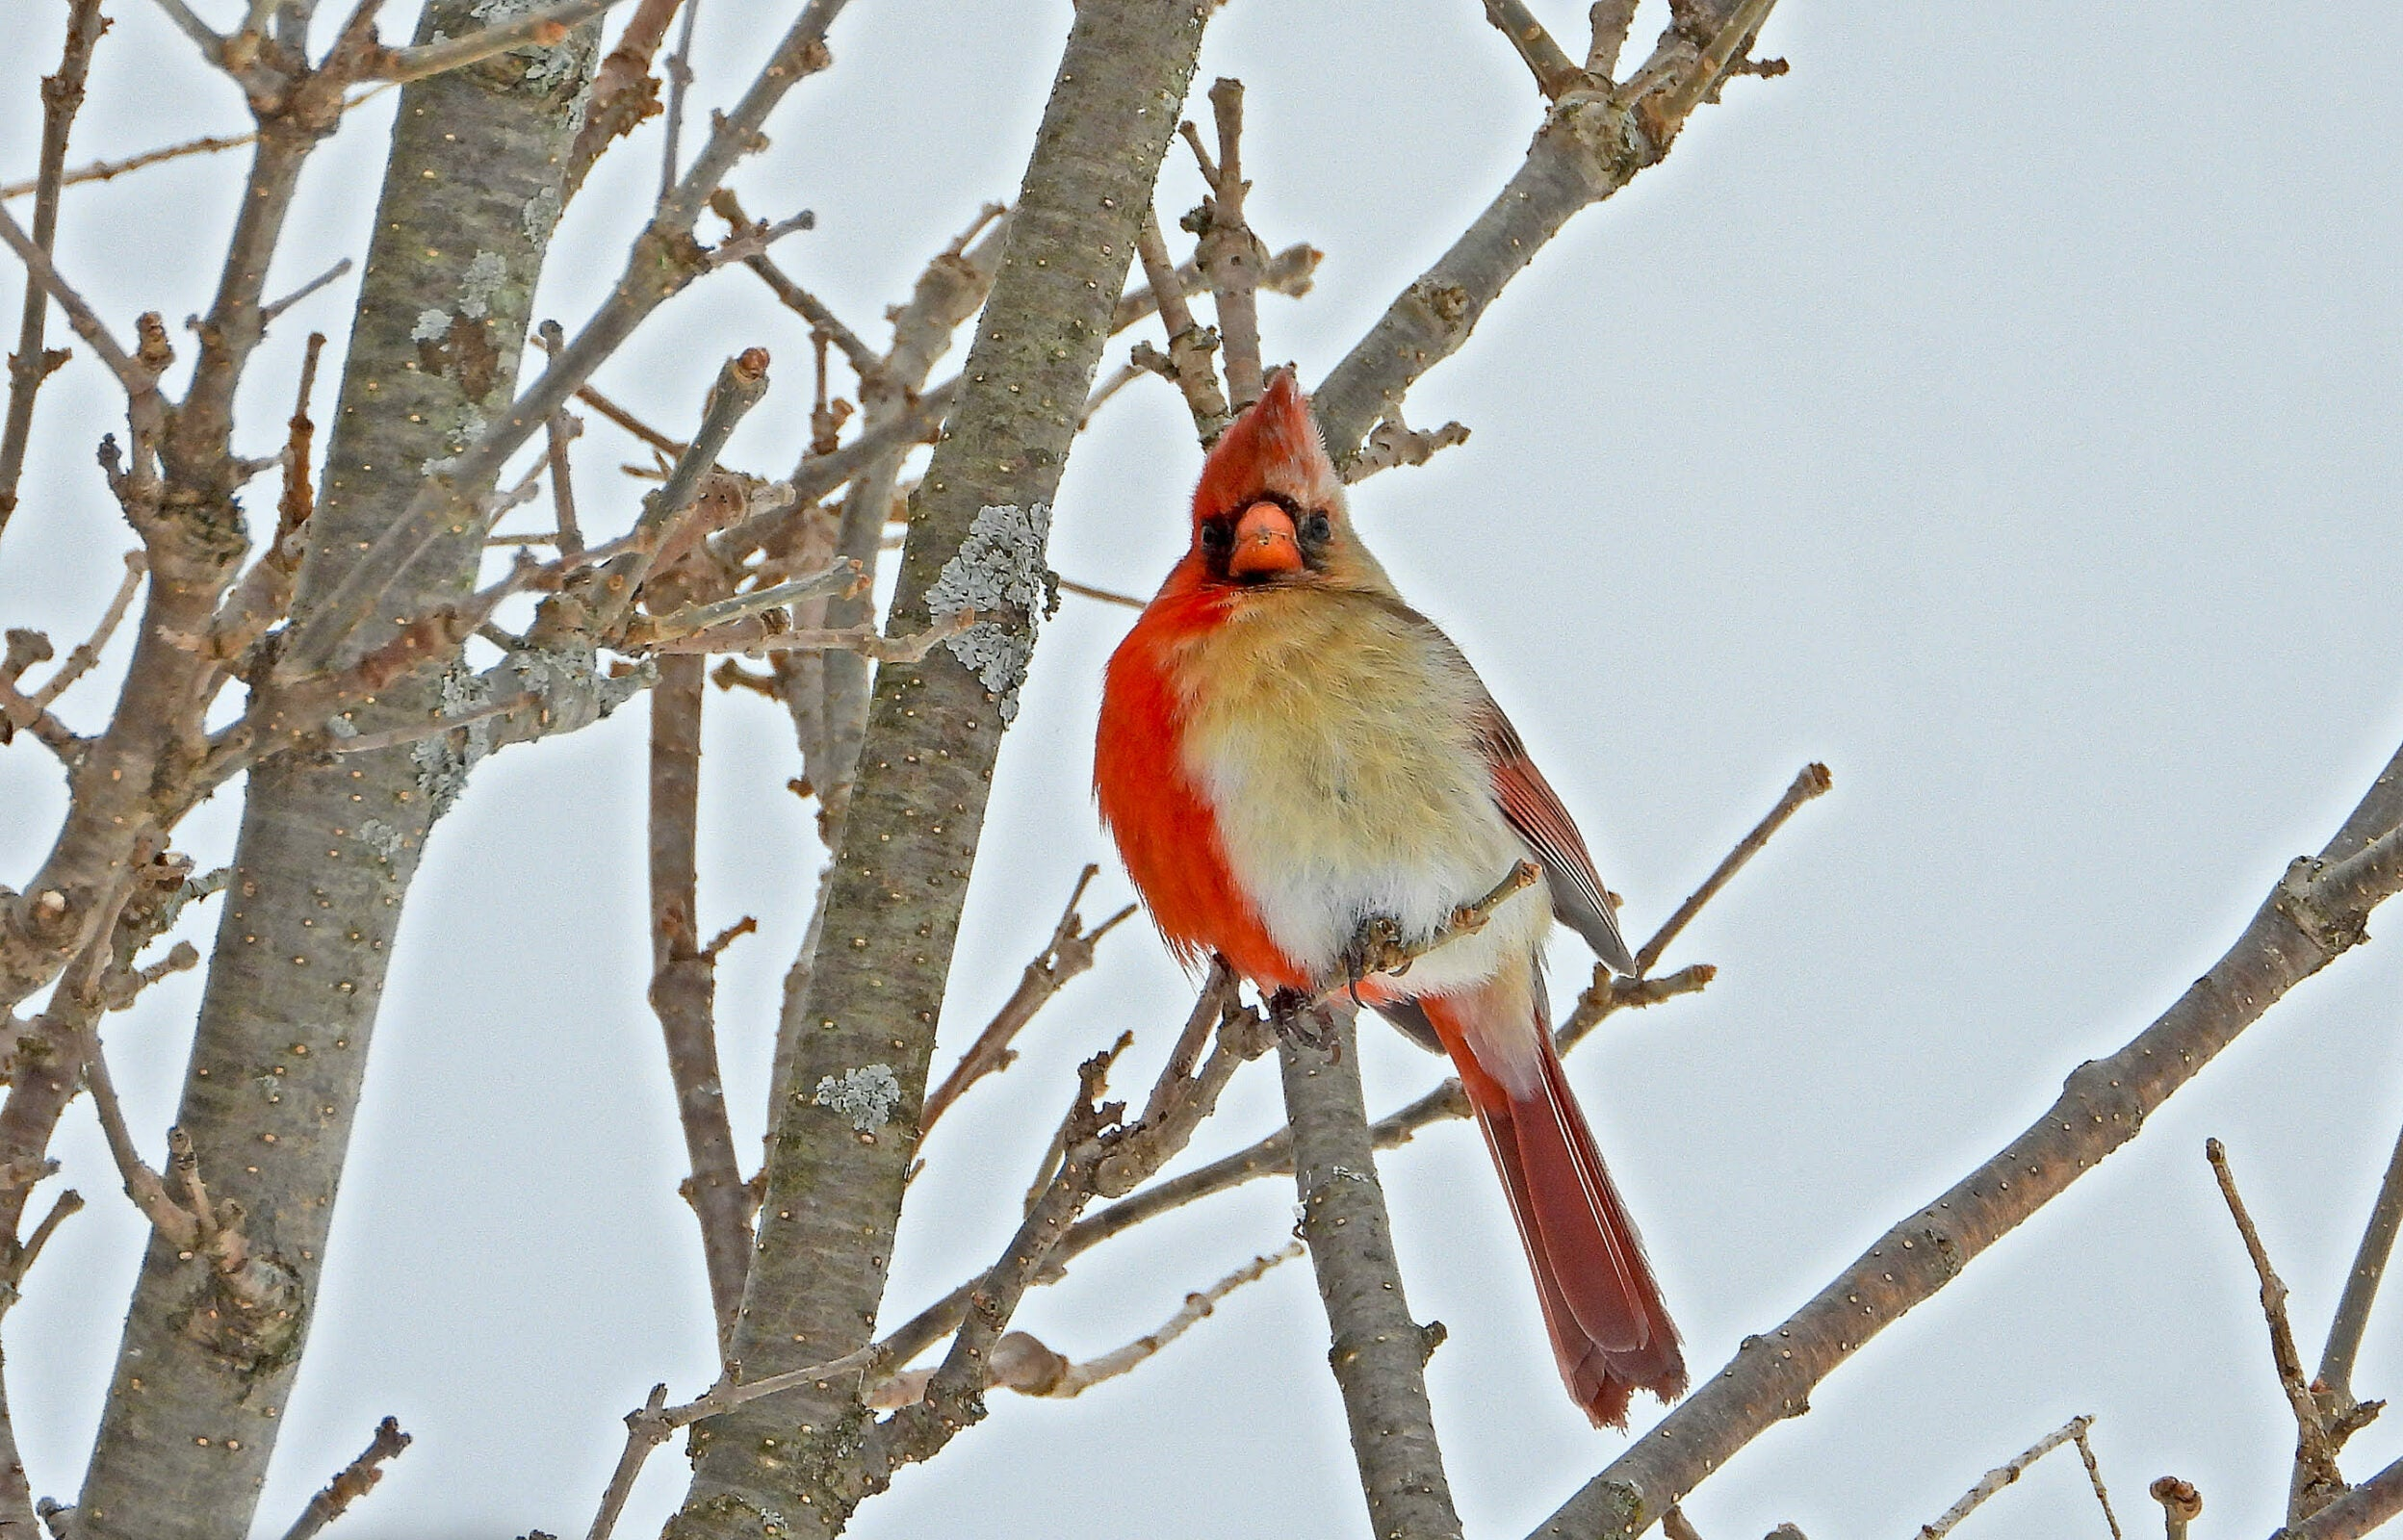 Northern cardinal with right side male red and left female tan in a bare tree